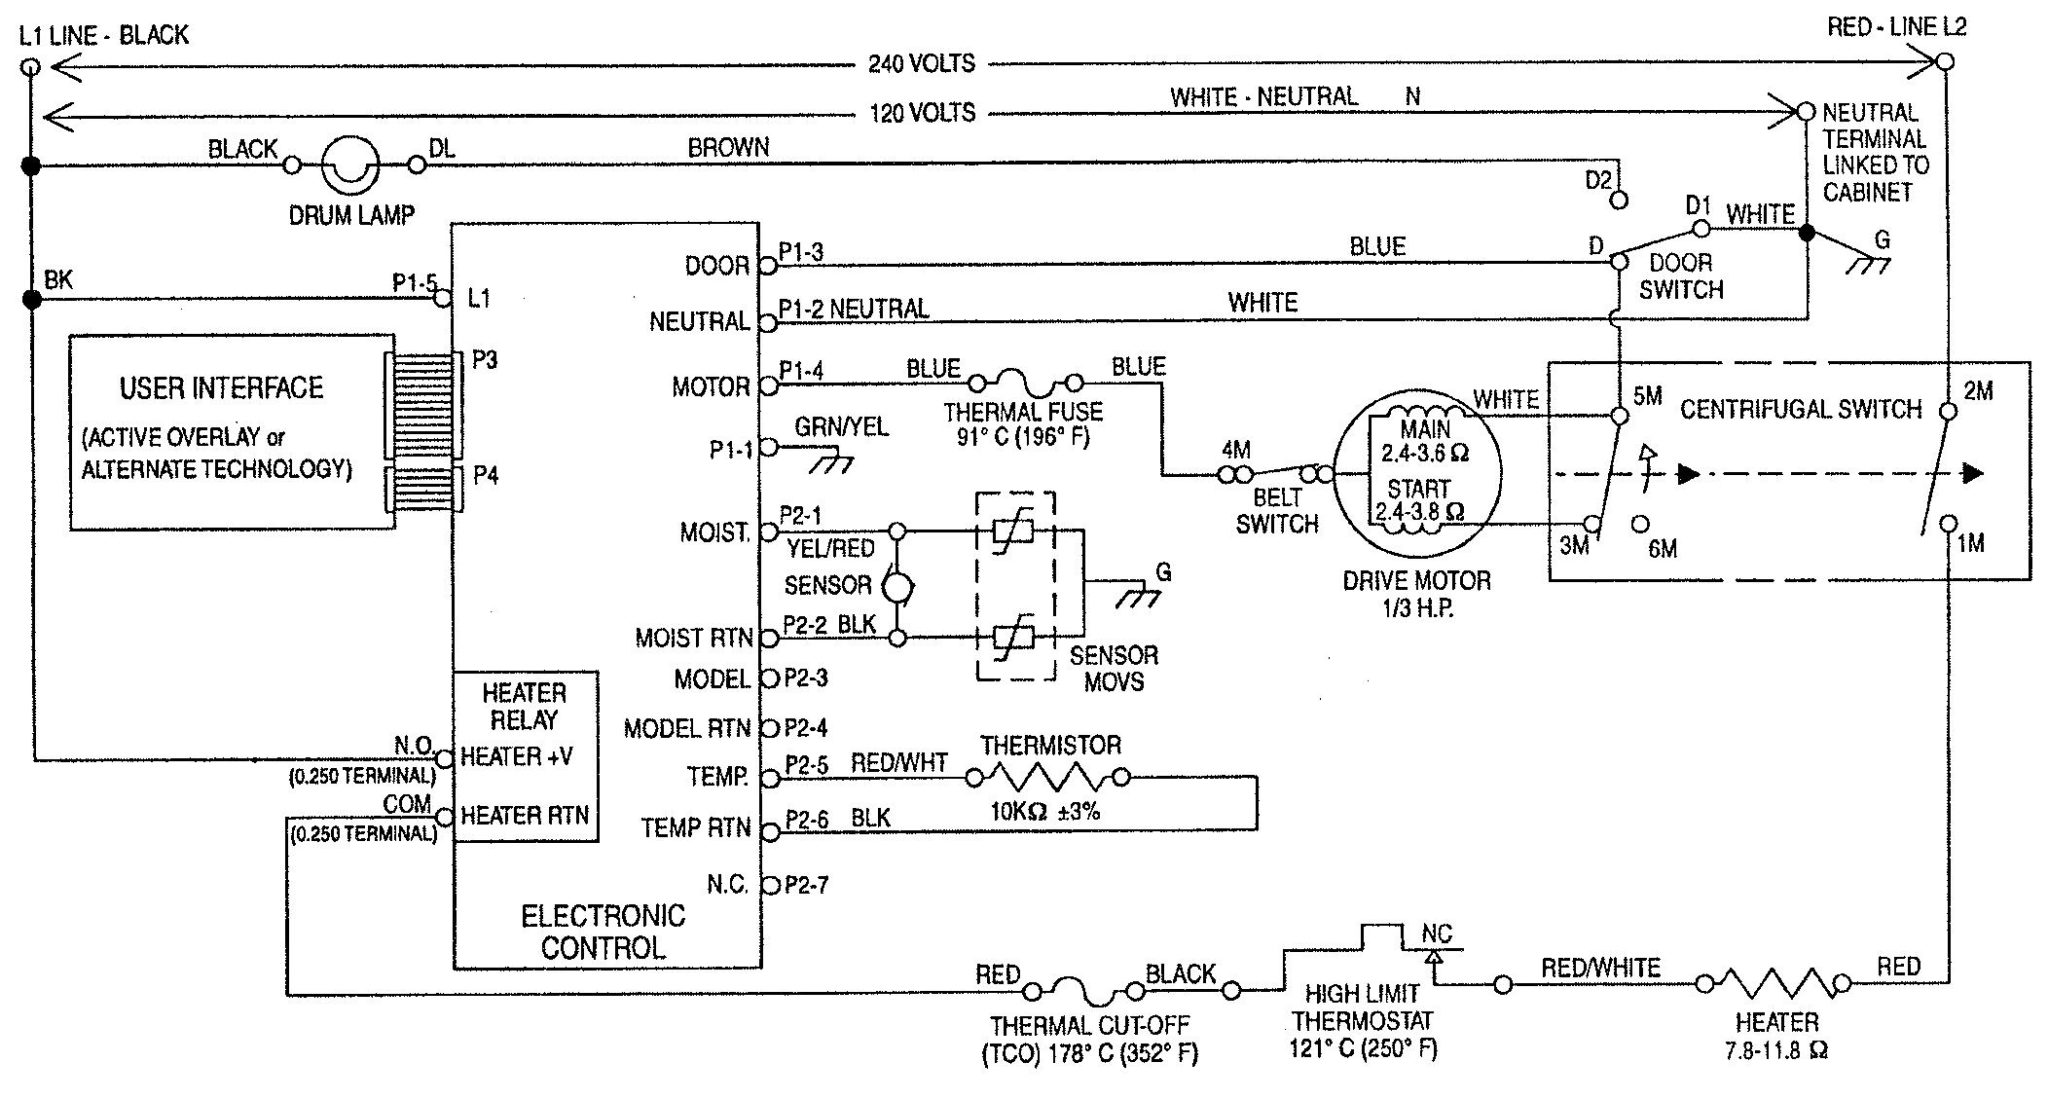 Figure 5-80: One manufacturer's schematic that shows the circuitry for the  drive motor